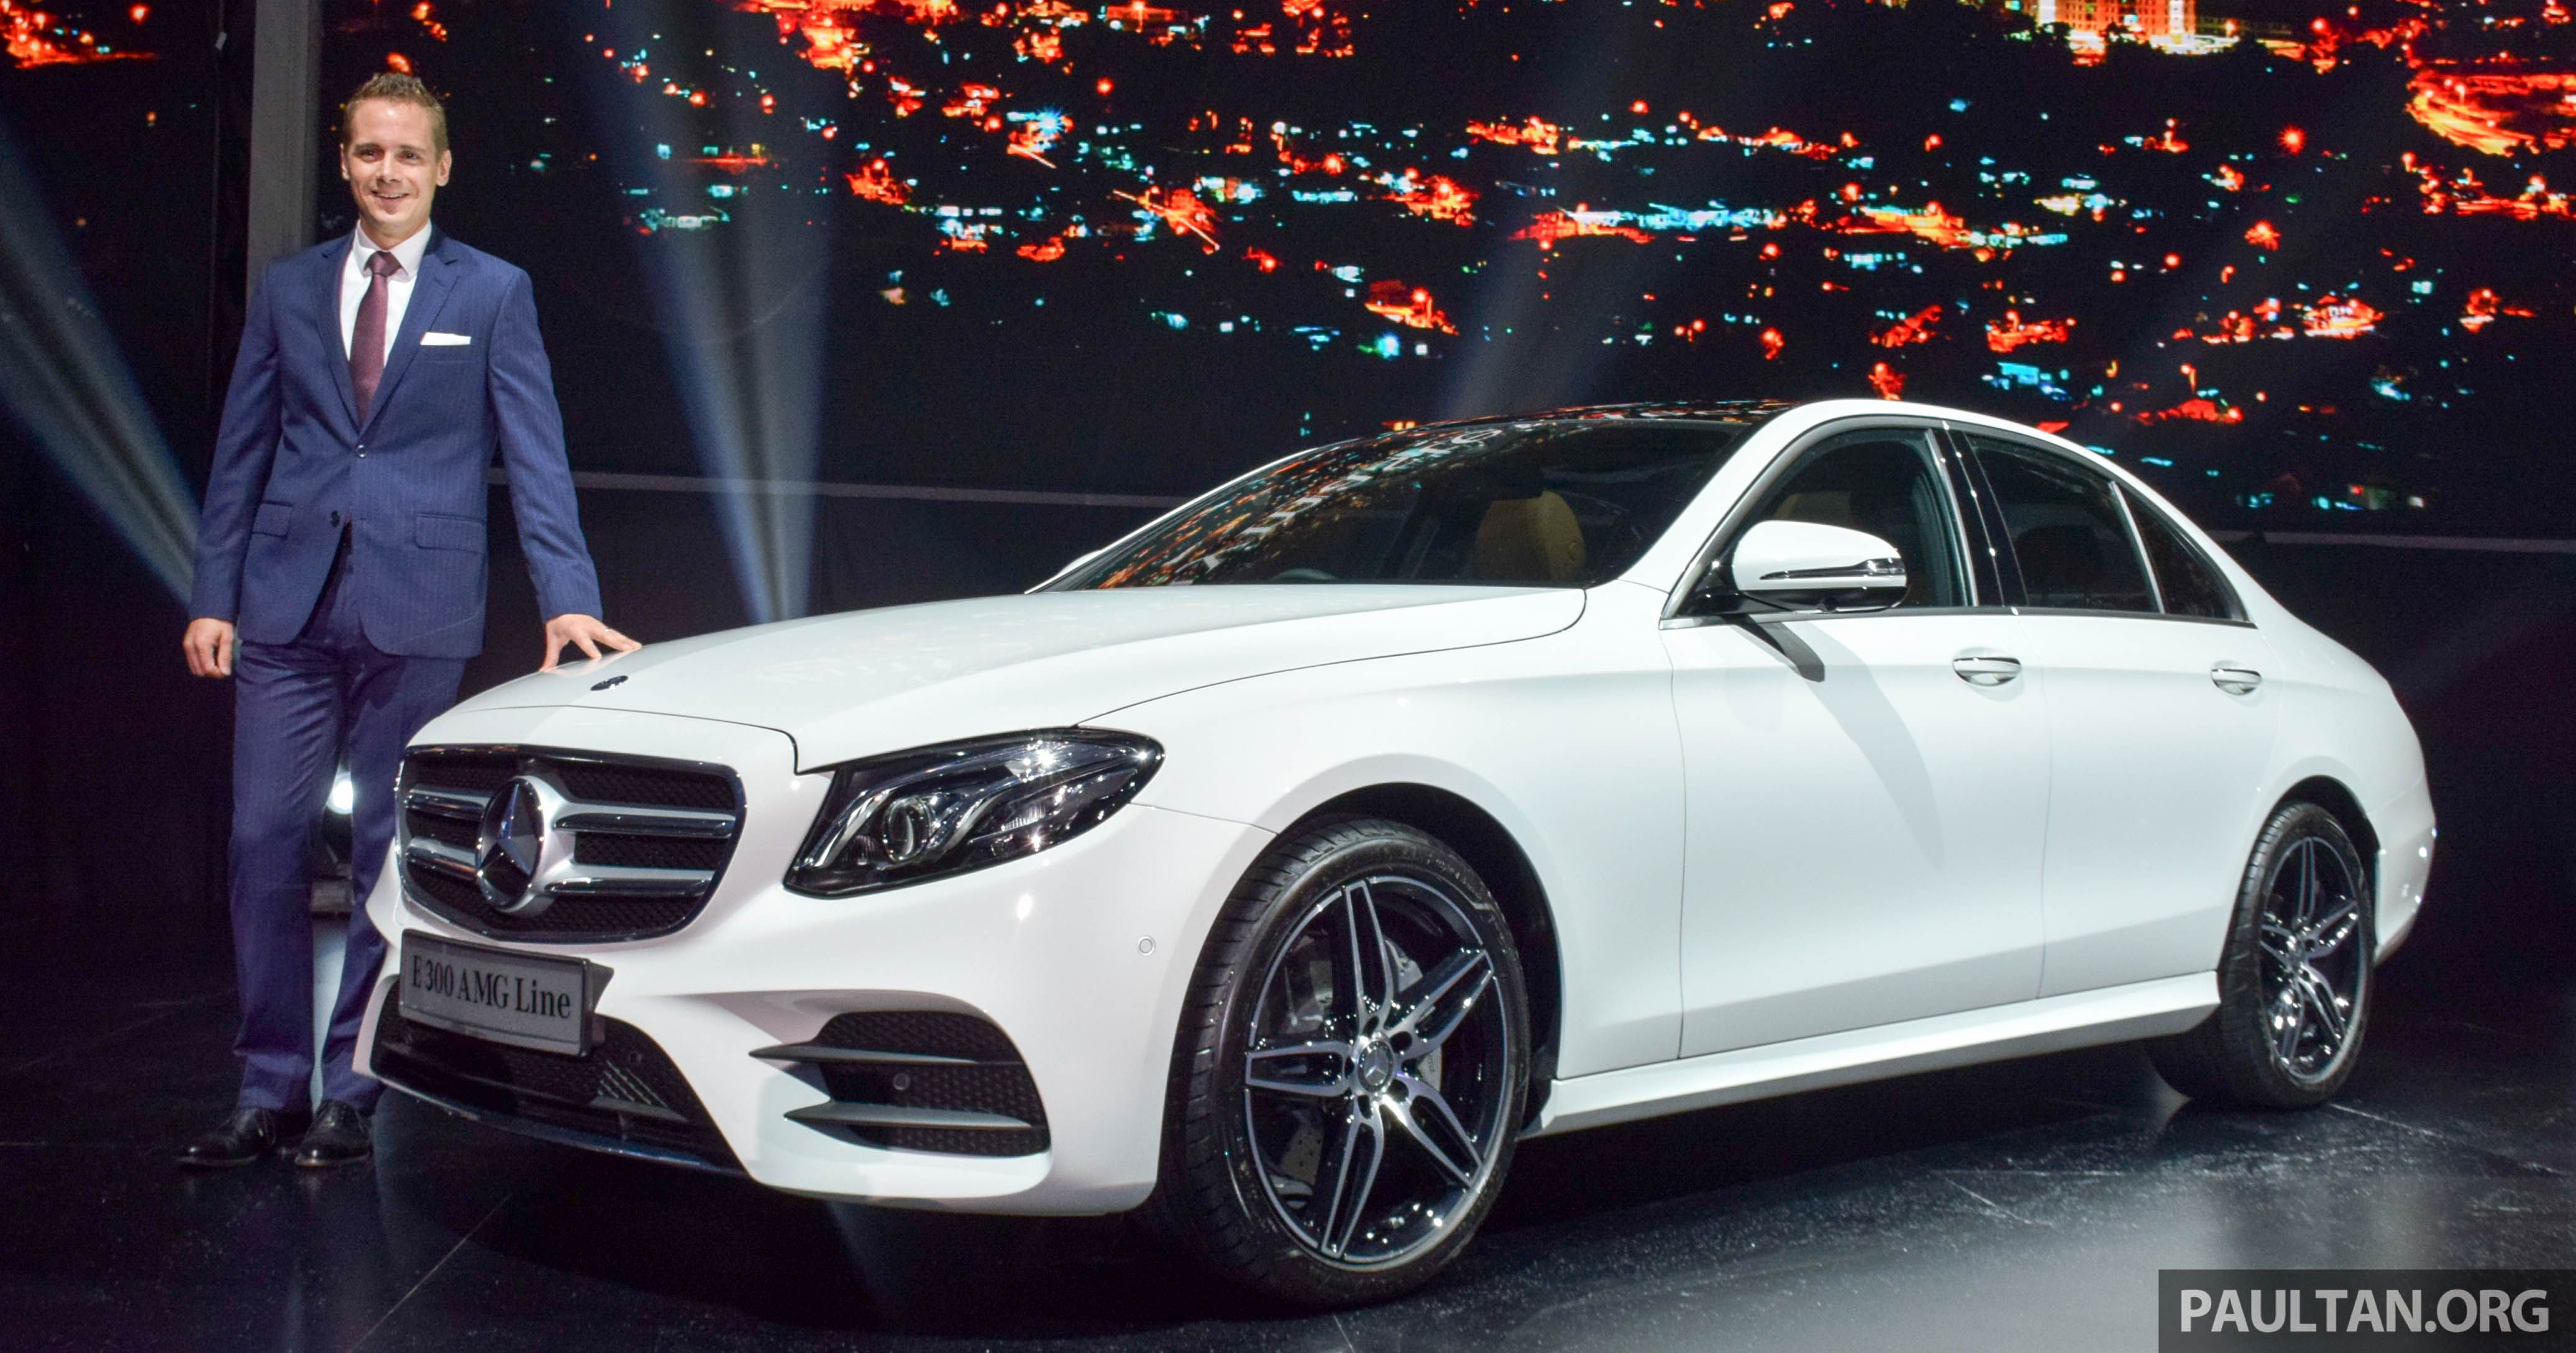 Mercedes Benz Malaysia has officially introduced the W213 Mercedes